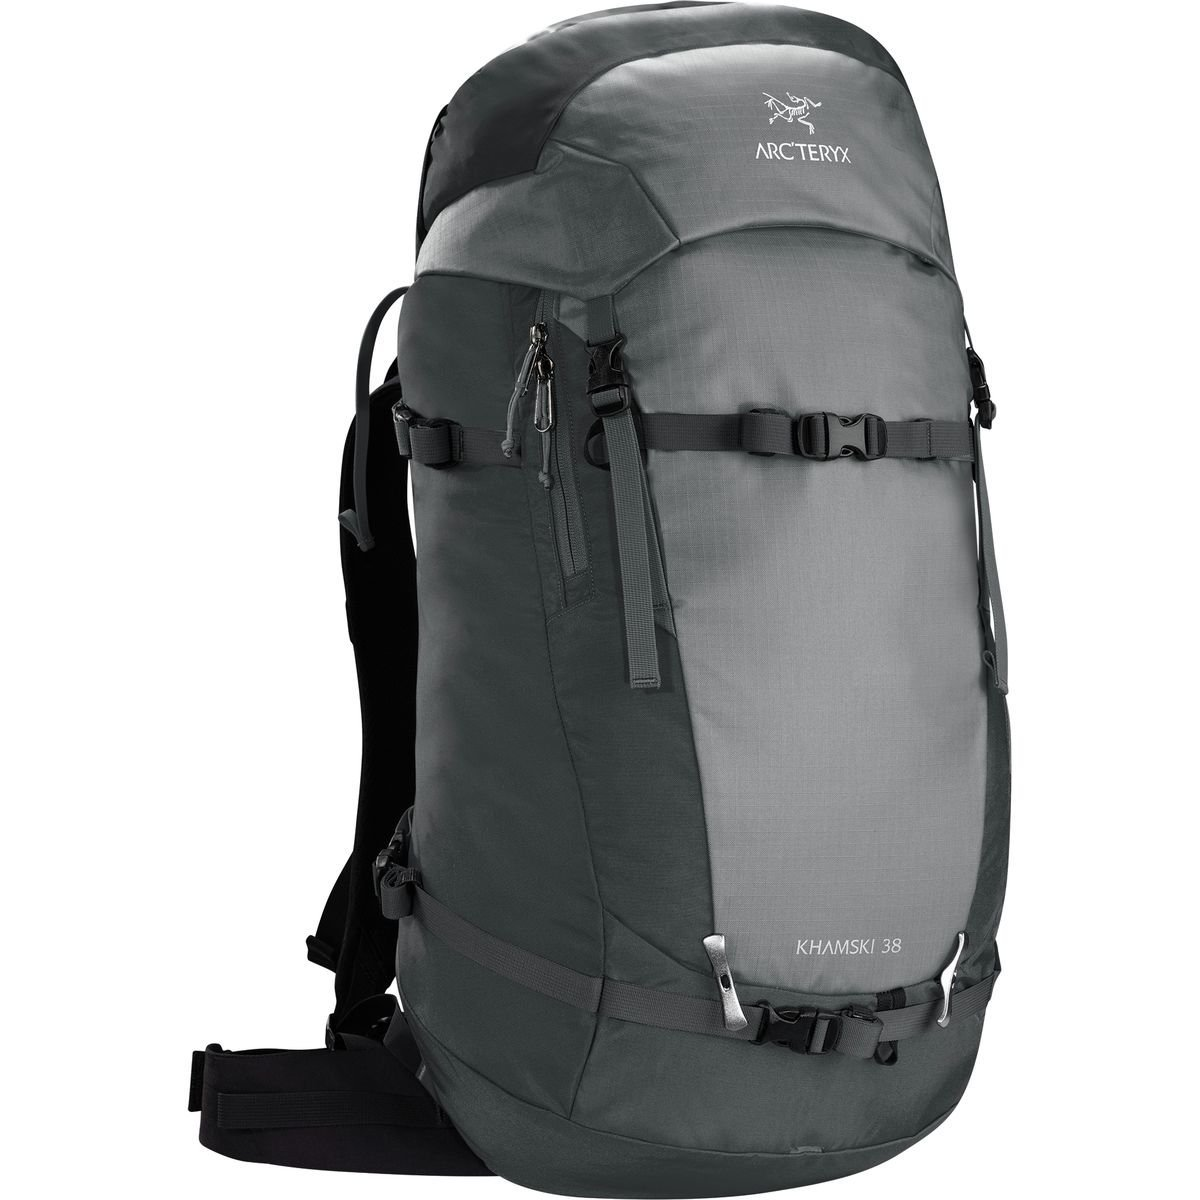 Arc'teryx Khamski 38 Backpack - 2319-2807cu in Mercury, Reg by Arc'teryx